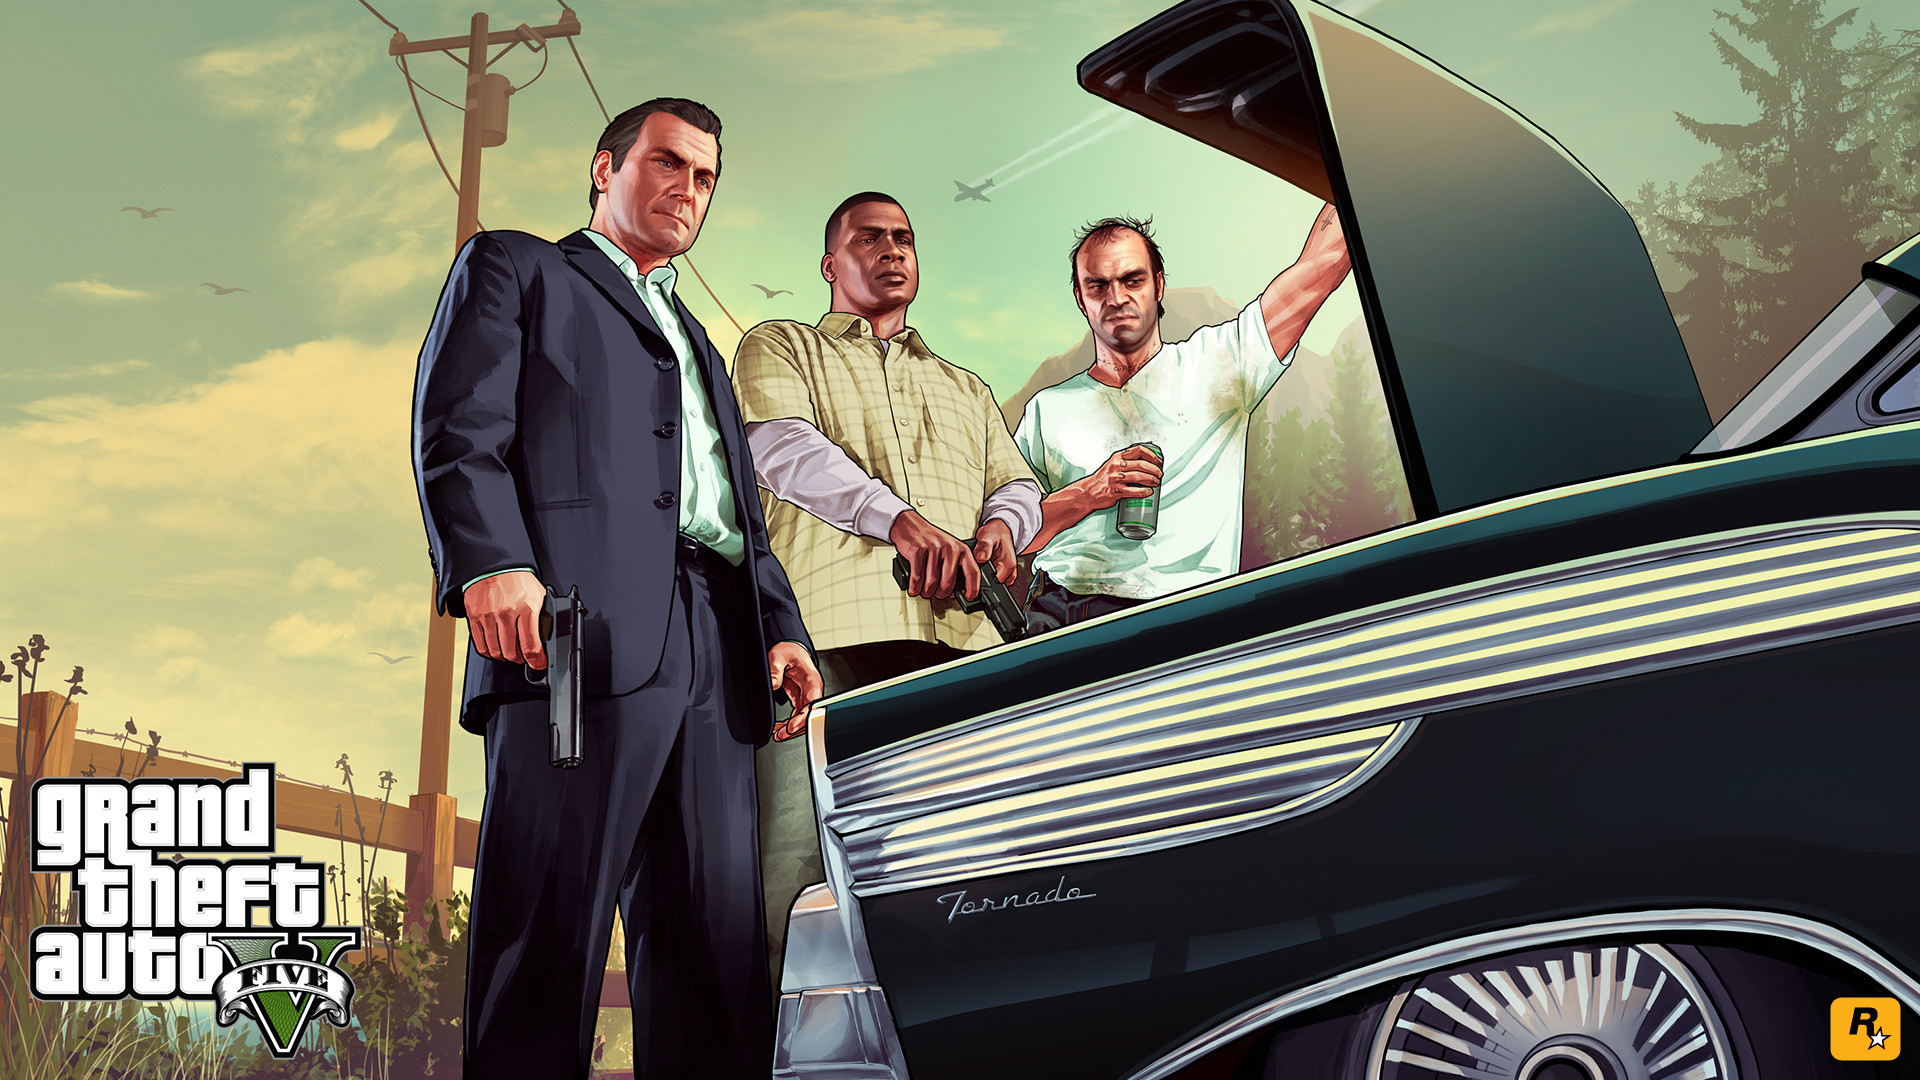 GTA V 1080p Wallpapers Released Urban Decay 1920x1080